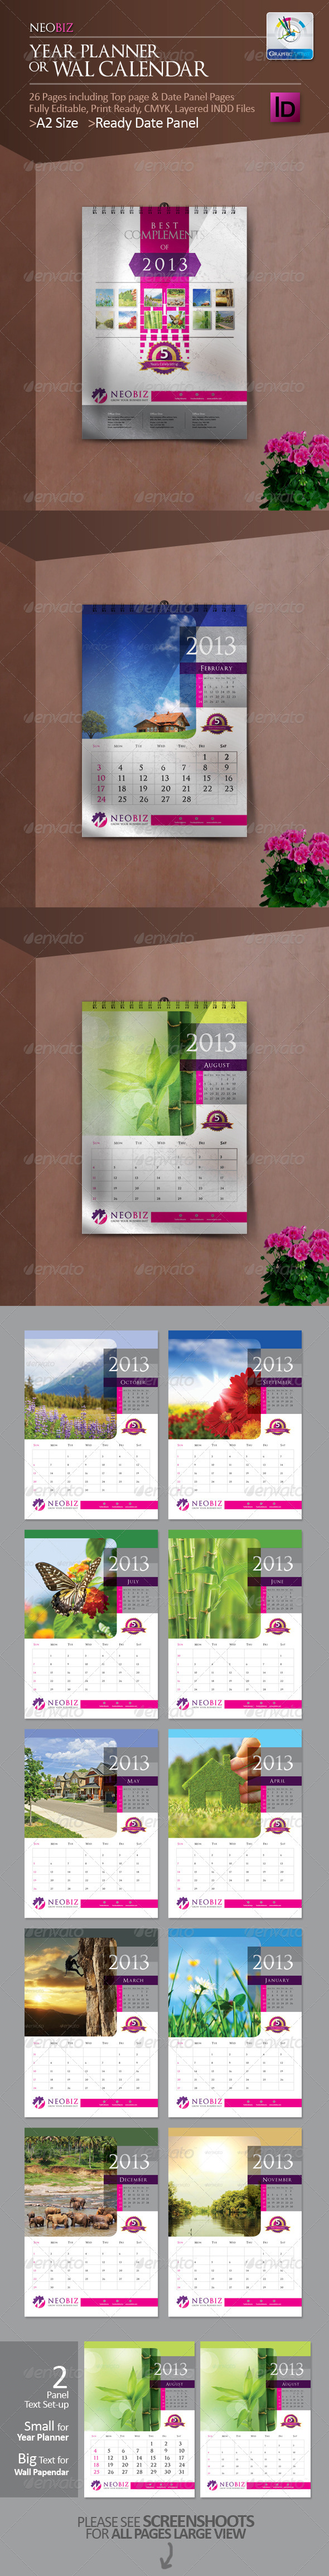 GraphicRiver NeoBiz Year Planner Wall Calendar 3396652